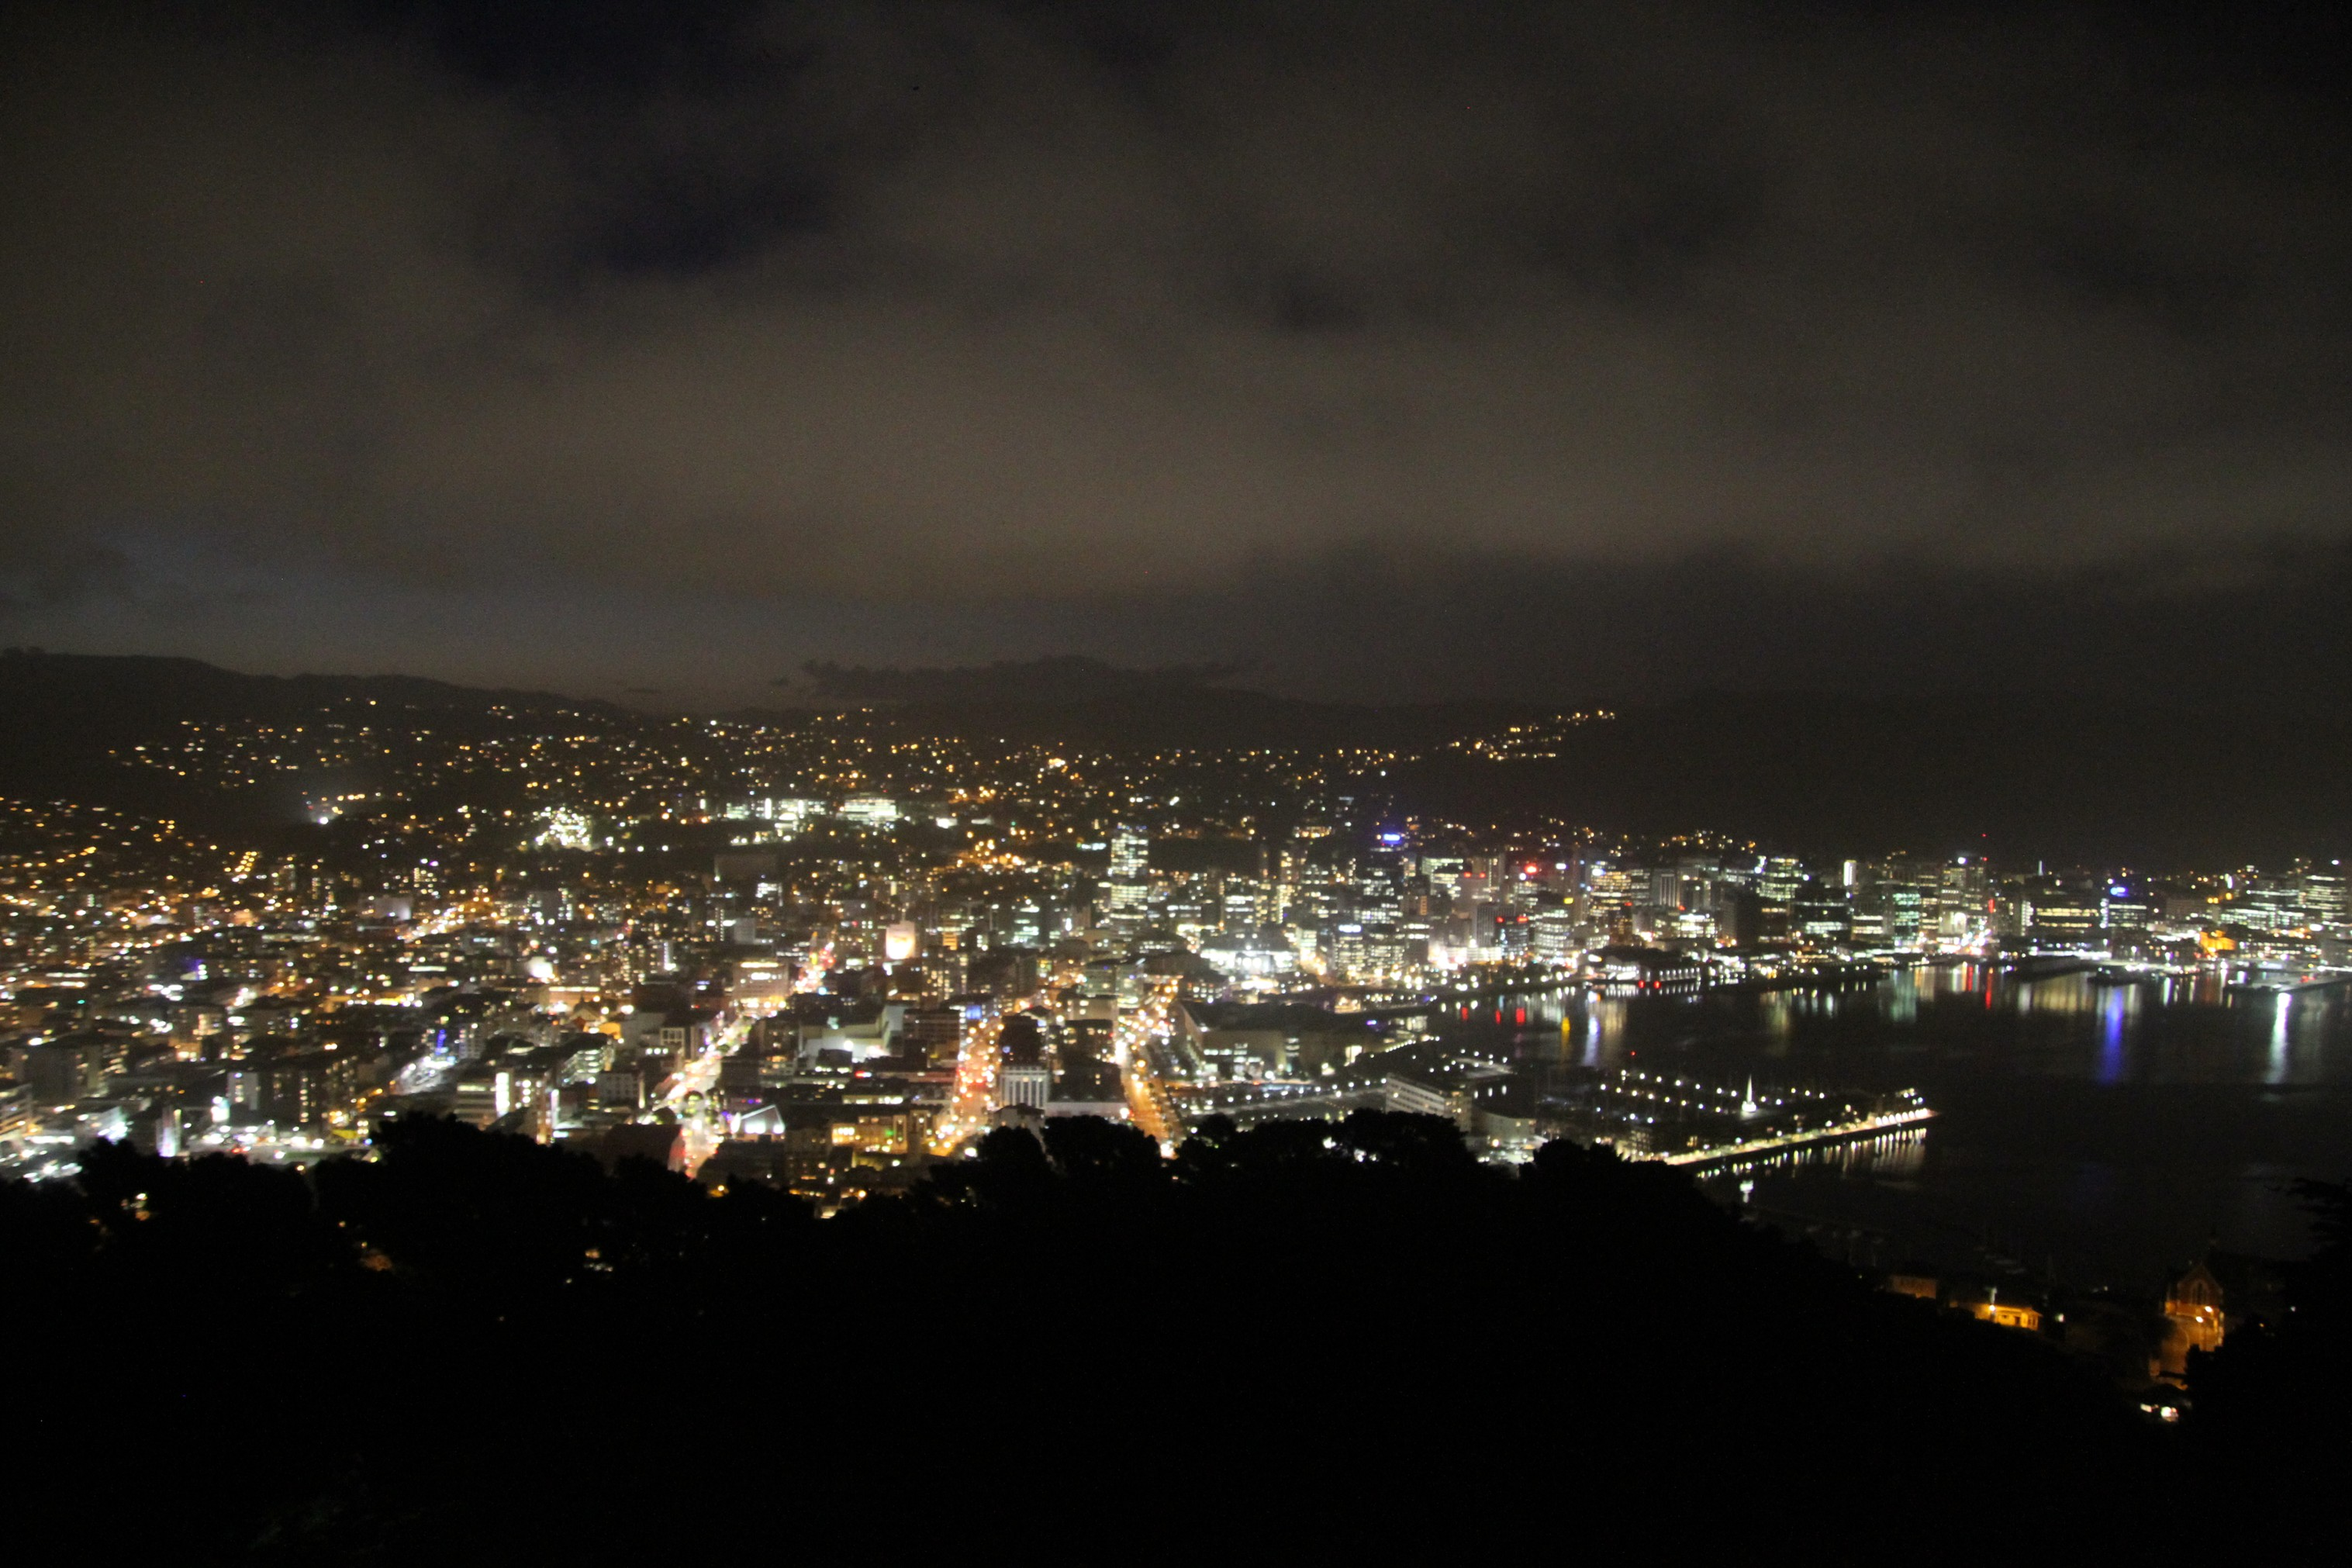 https://bubo.sk/uploads/galleries/5025/marekmeluch_novyzeland_wellington-from-victoria-hill.jpg